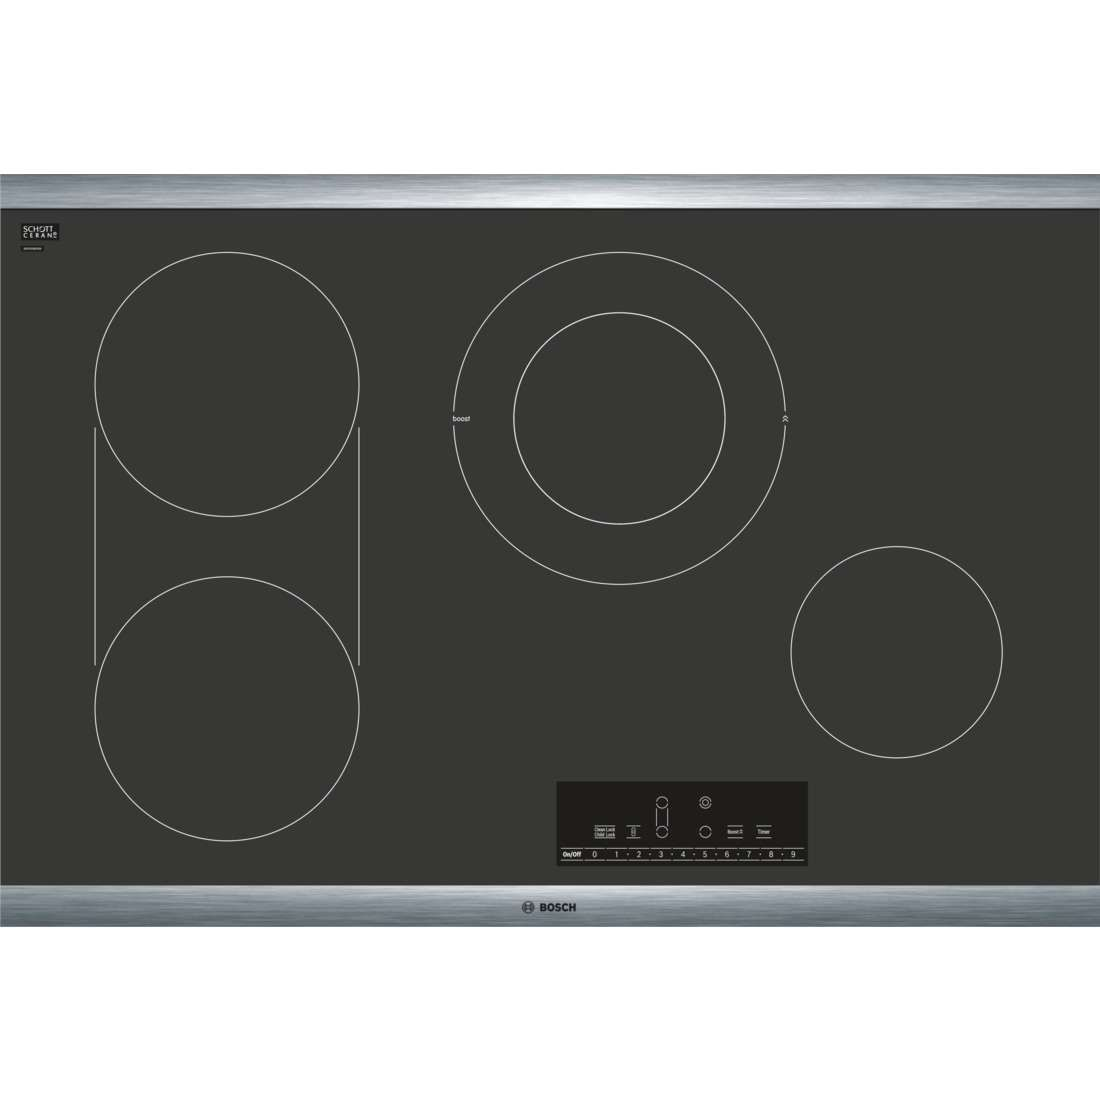 Net8068suc By Bosch Electric Cooktops Goedekers Com Electric Cooktop Cooktop Bosch